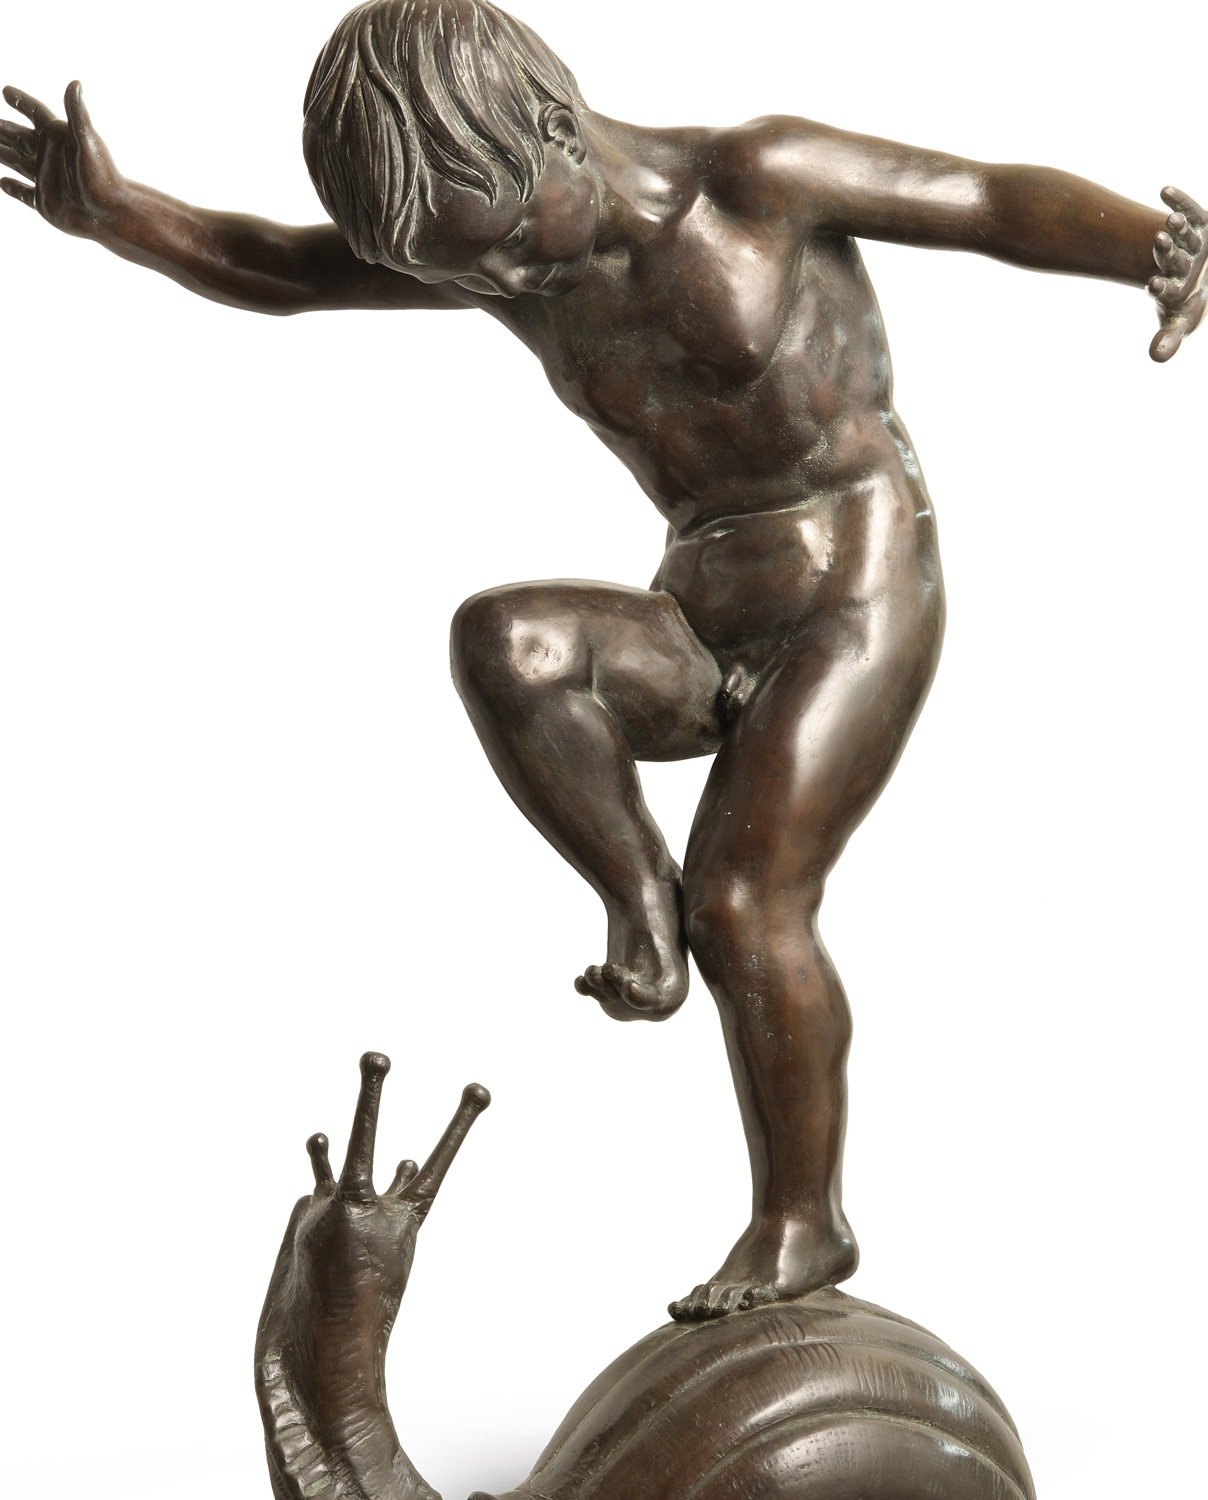 Boy on the Snail by Cappelletti. Bronze sculpture for sale, Pietro Bazzanti Art Gallery, Florence, Italy